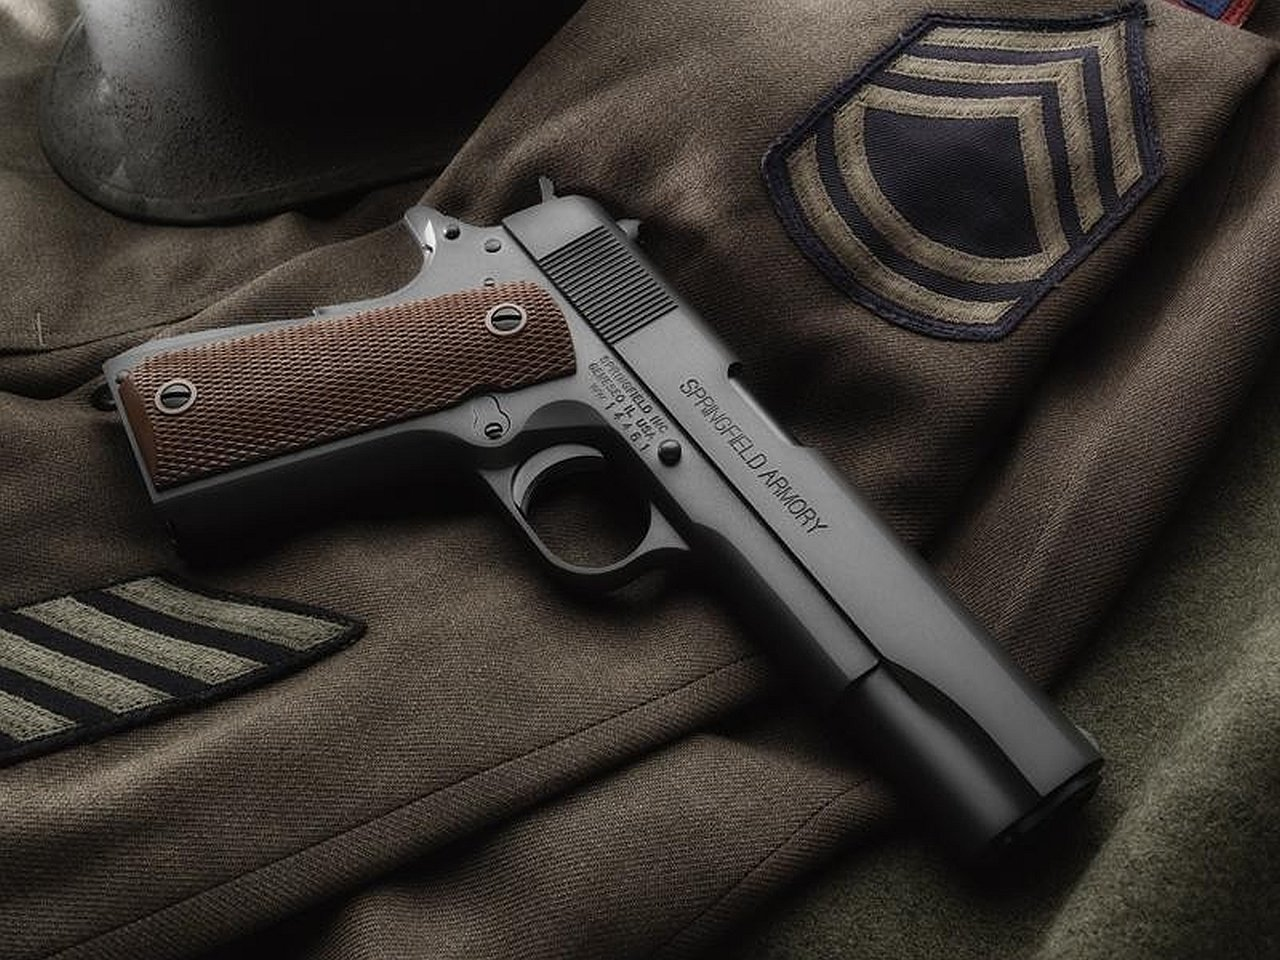 Weapons   Springfield Armory 1911 Pistol Wallpaper 1280x960